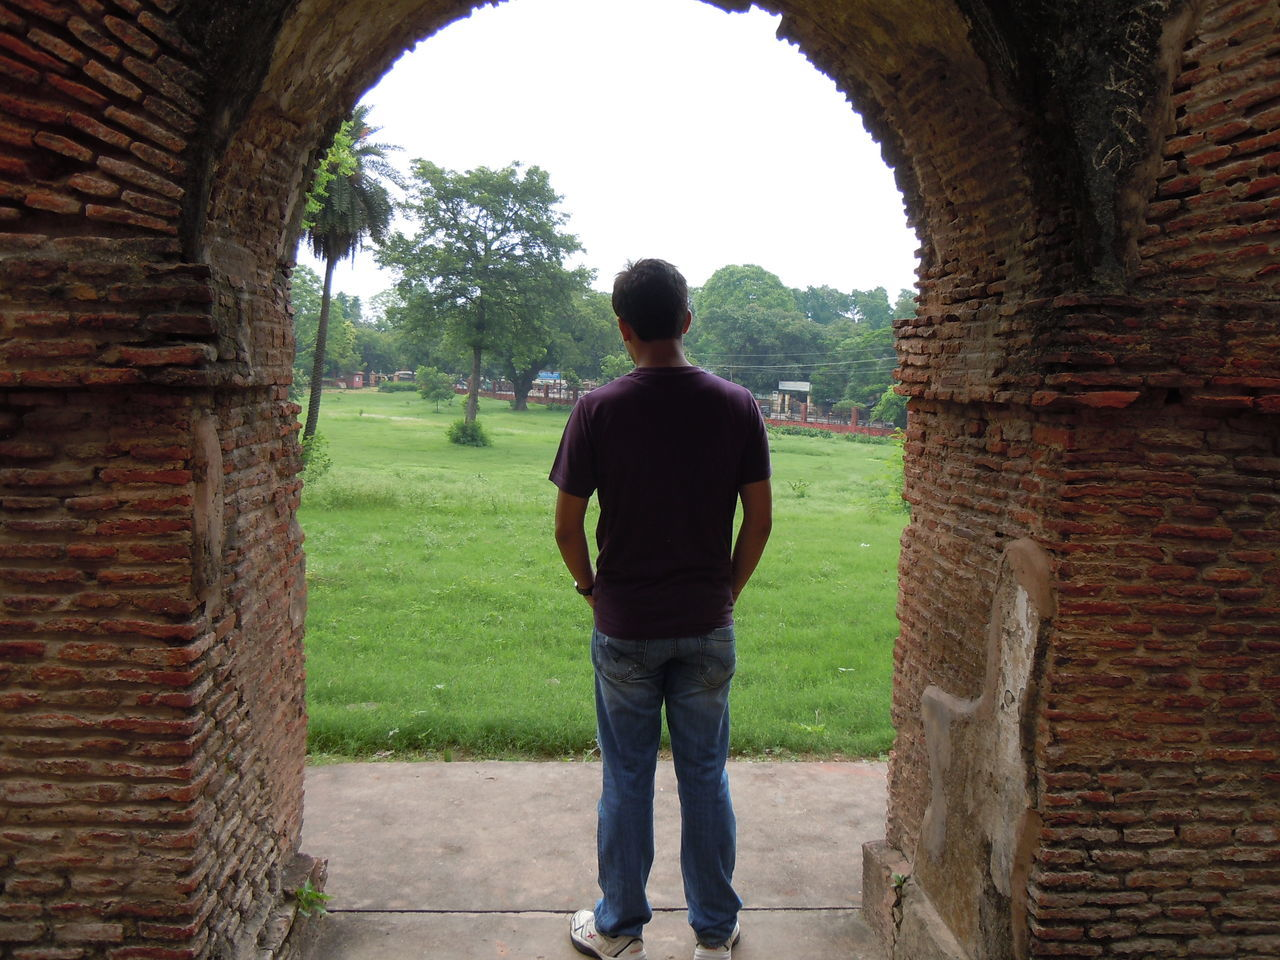 real people, rear view, brick wall, built structure, day, one person, arch, architecture, casual clothing, standing, full length, outdoors, lifestyles, leisure activity, men, tree, building exterior, nature, one man only, adult, people, adults only